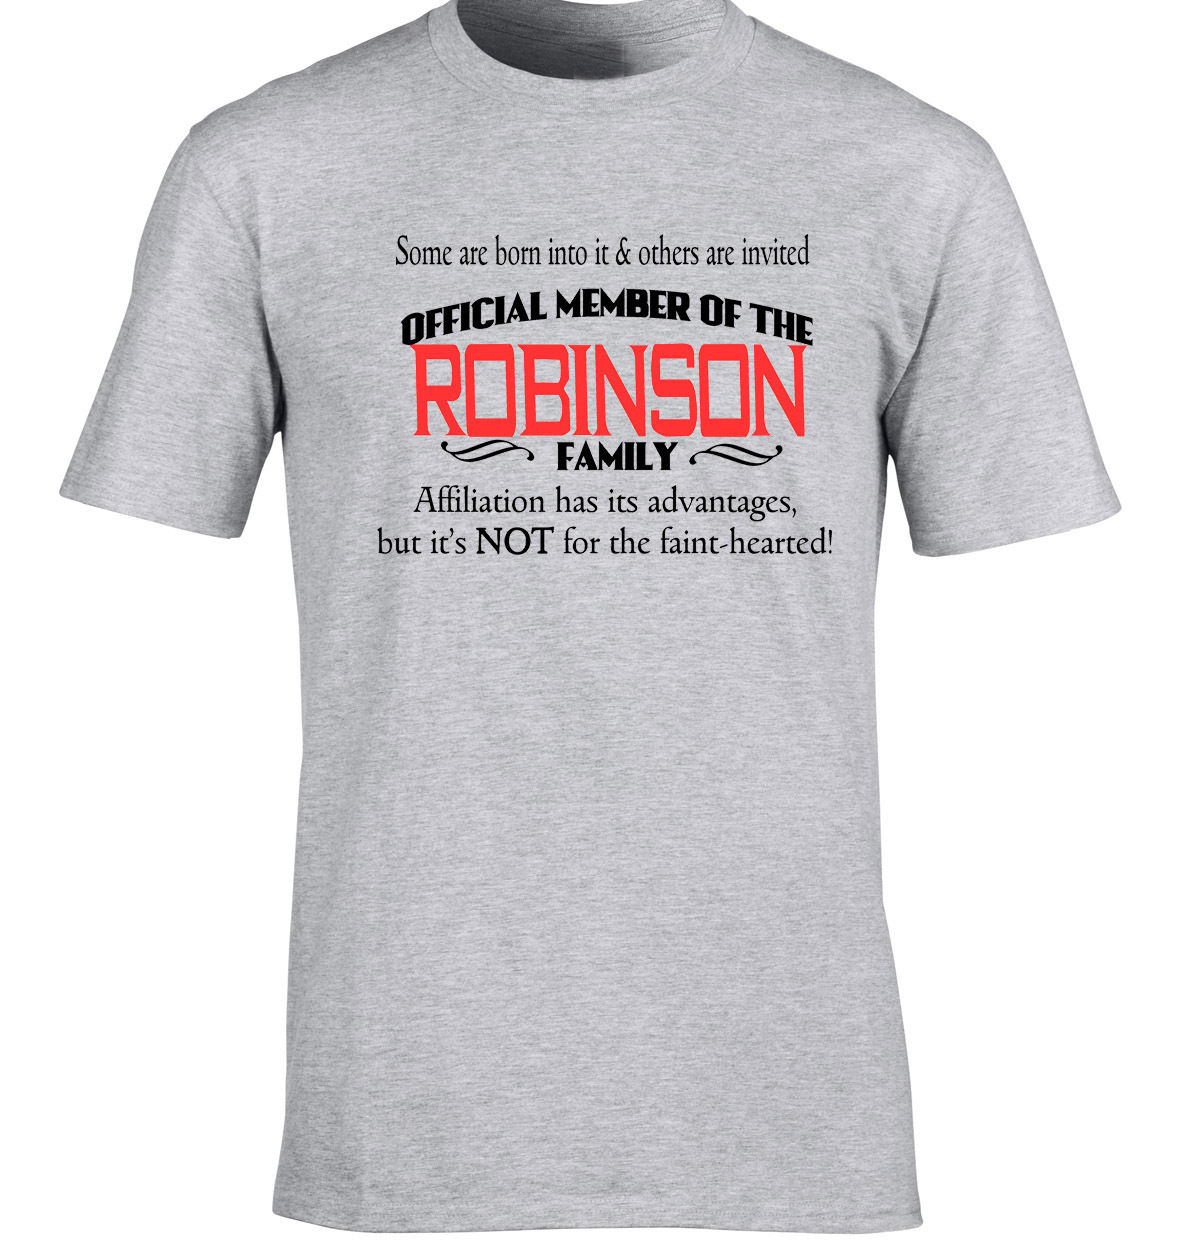 Robinson Family Surname T-Shirt Birthday Gift Any Name Can B Added 80th 30th Hipster Tees Summer Mens T Shirt Short Sleeve image